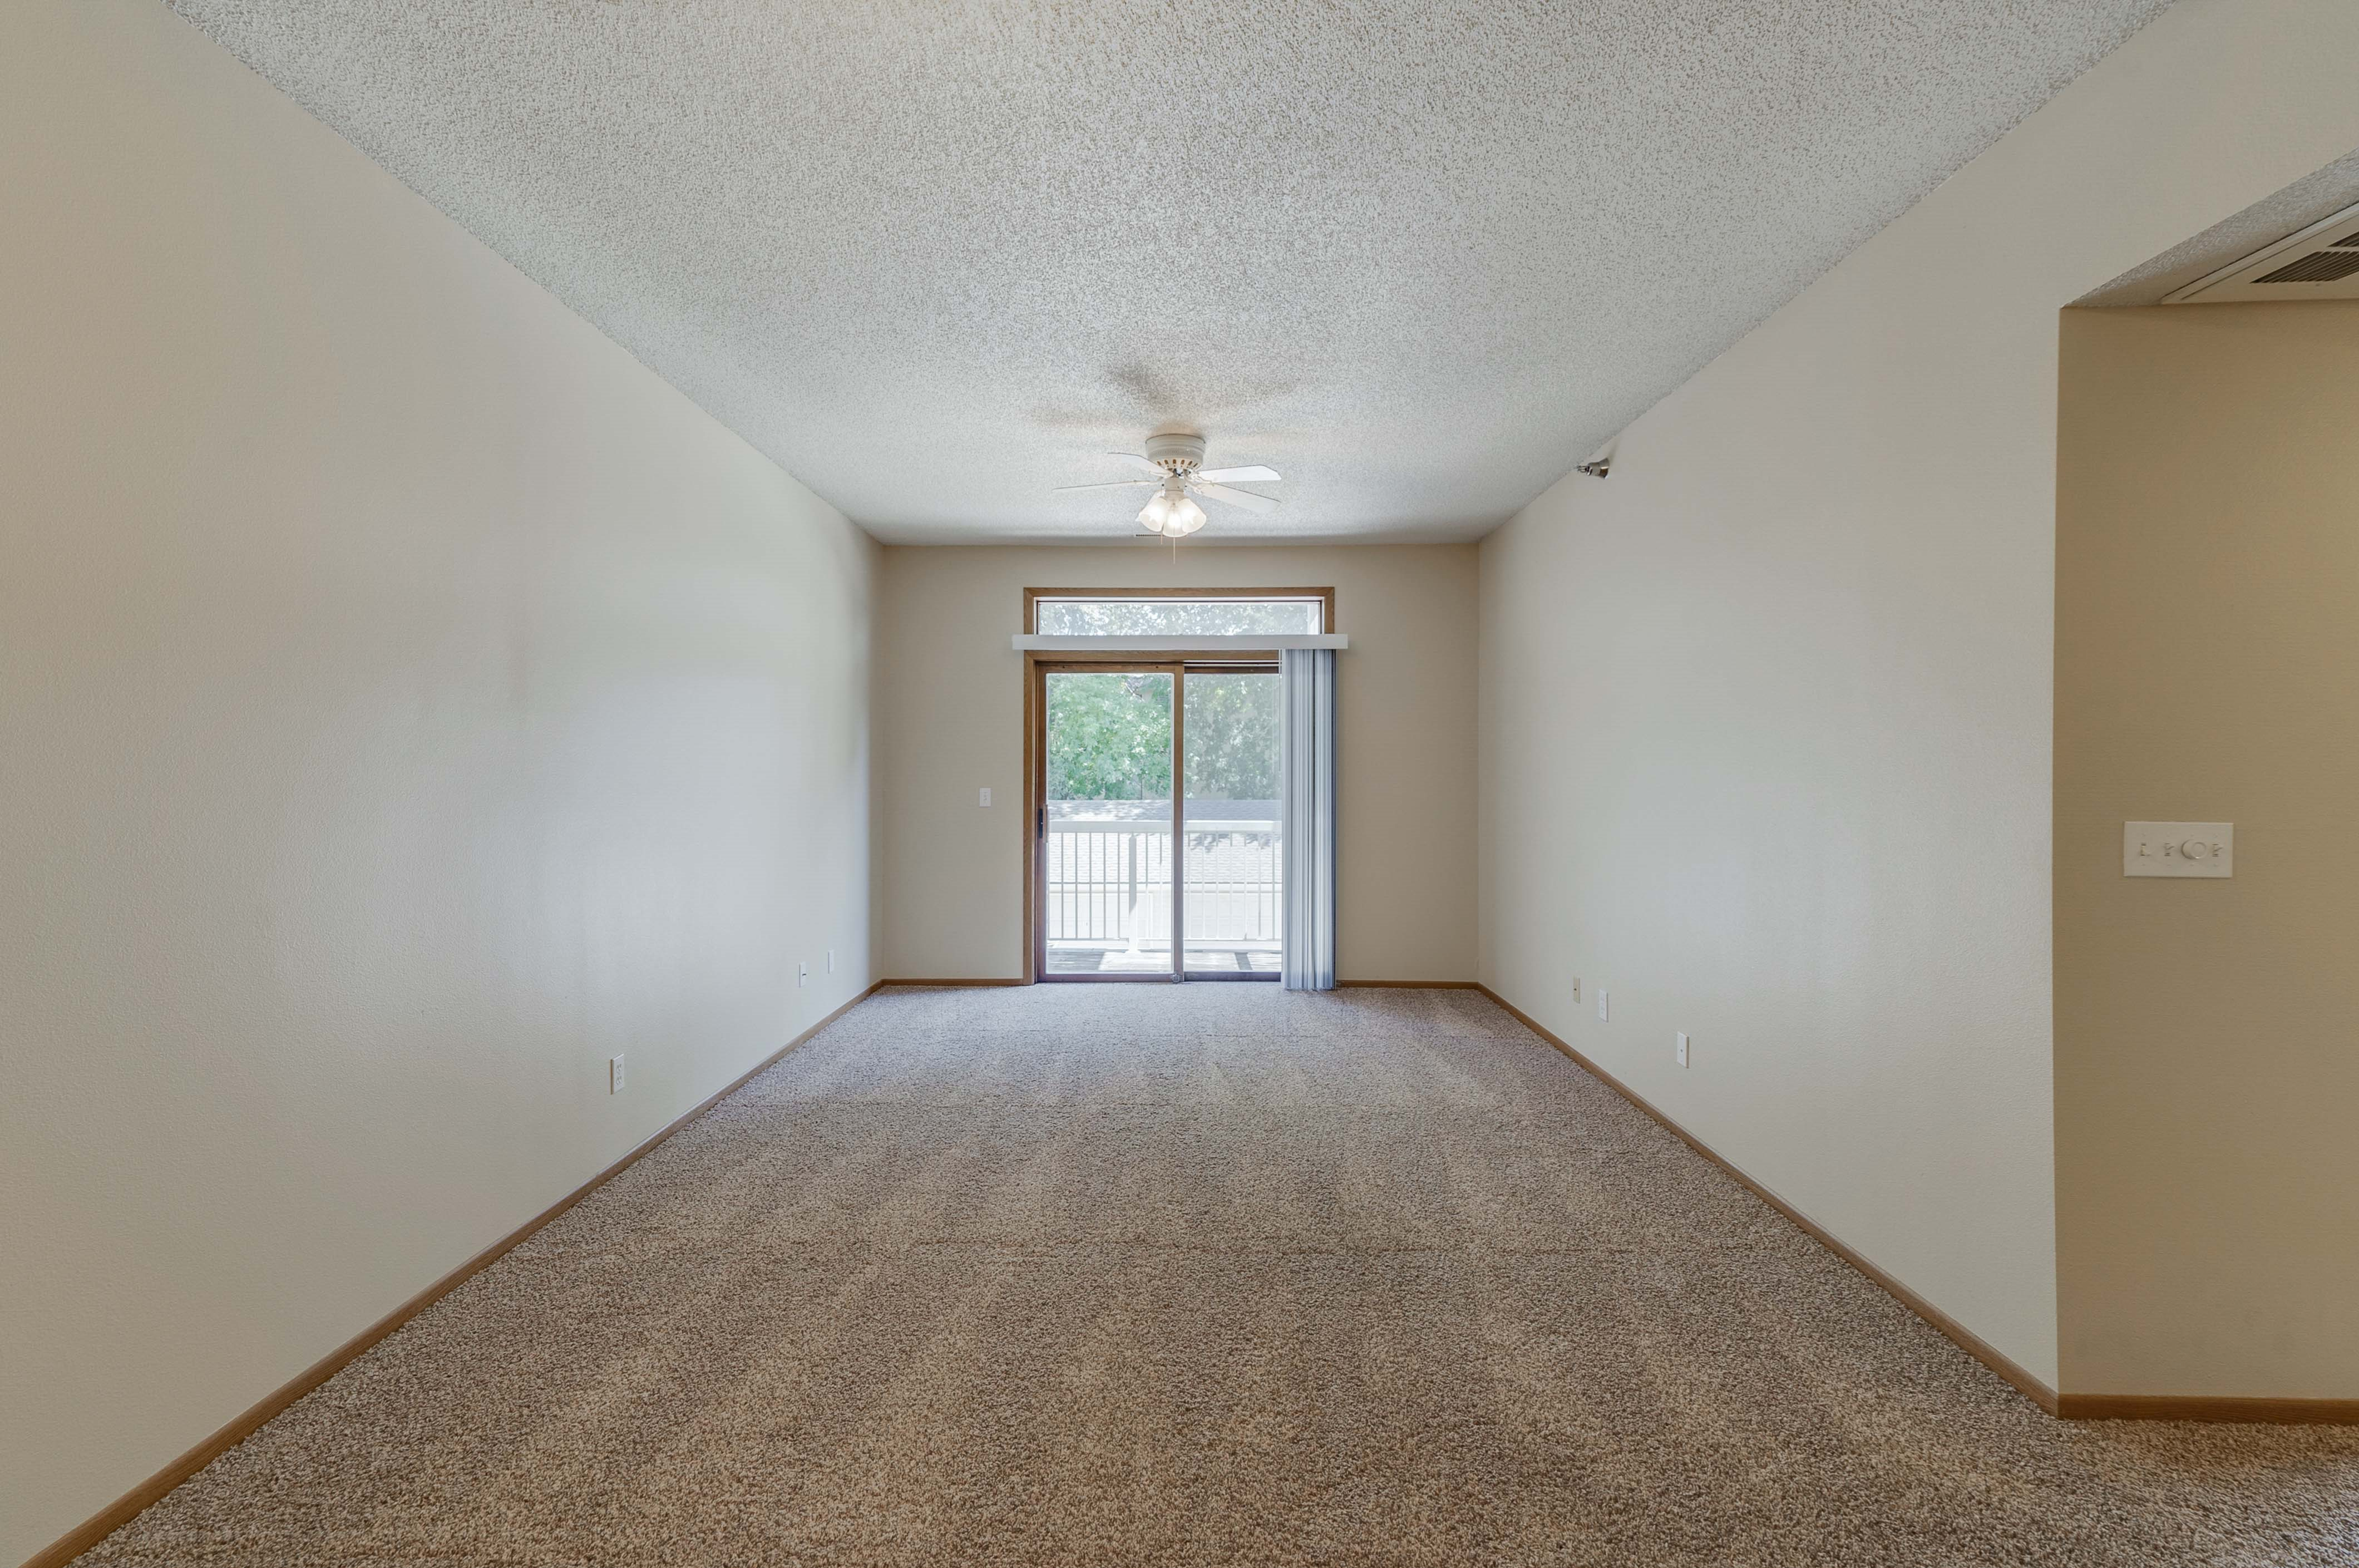 Large open living room looking out to the sliding glass door